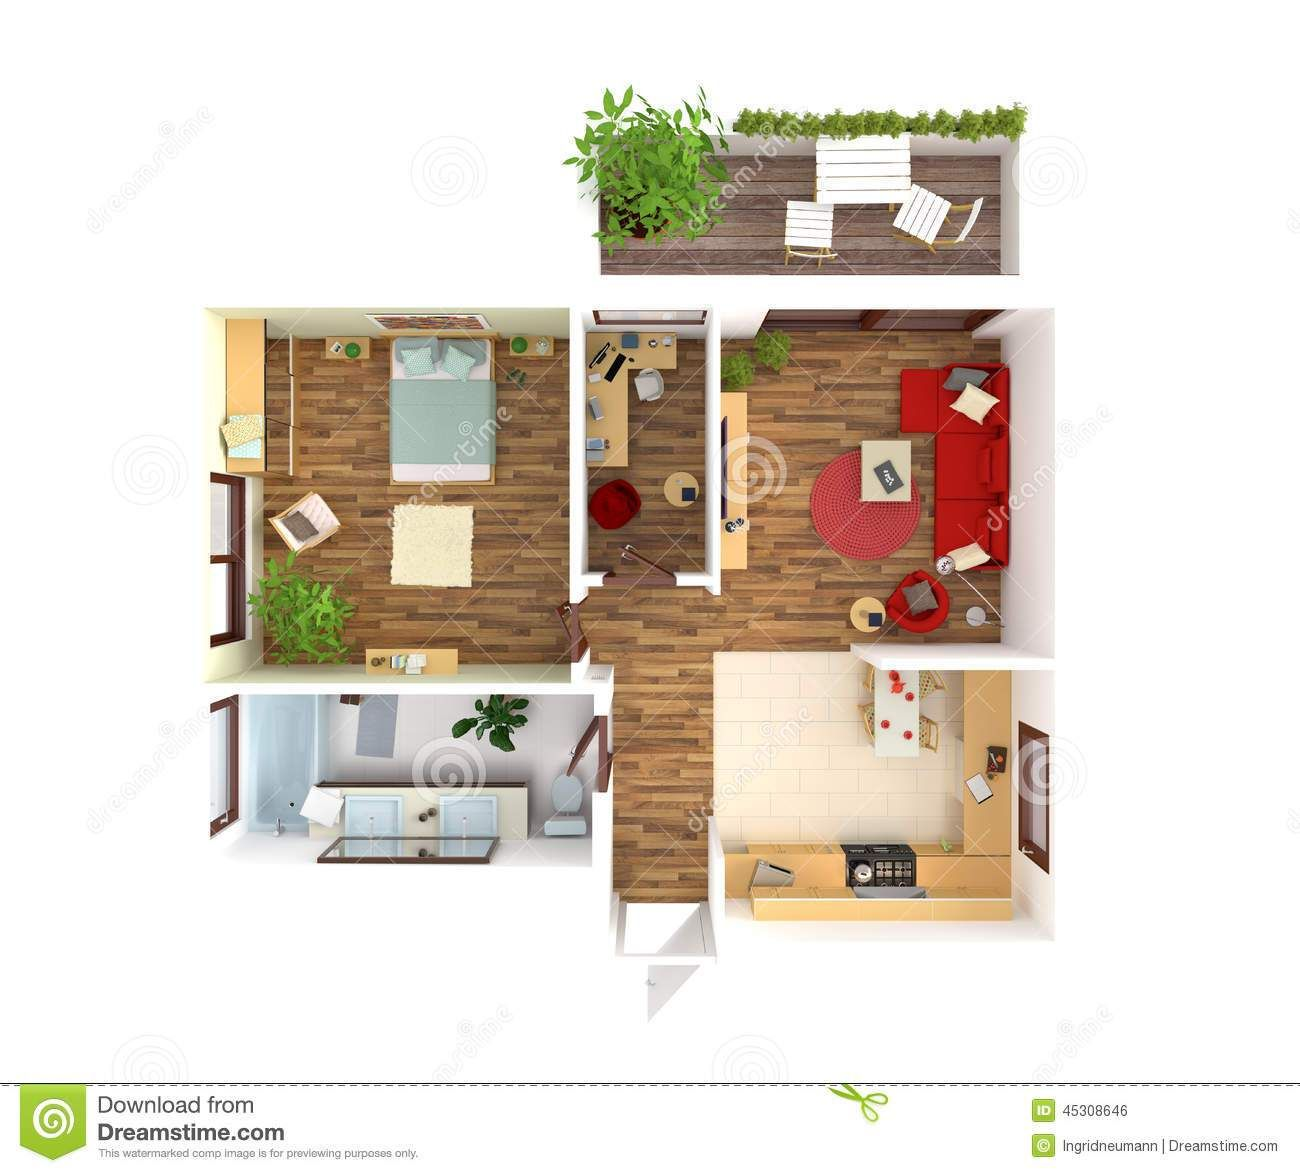 most popular home plans, 100 most popular house plans, short house plans, best selling house plans, vertical house plans, spanish mediterranean house plans, door house plans, star house plans, kill house plans, steel house plans, worst house plans, all house plans, cop house plans, shade house plans, nice house plans, tnd house plans, colonial house plans, 3d view house plans, color house plans, big house plans, on top house design plans